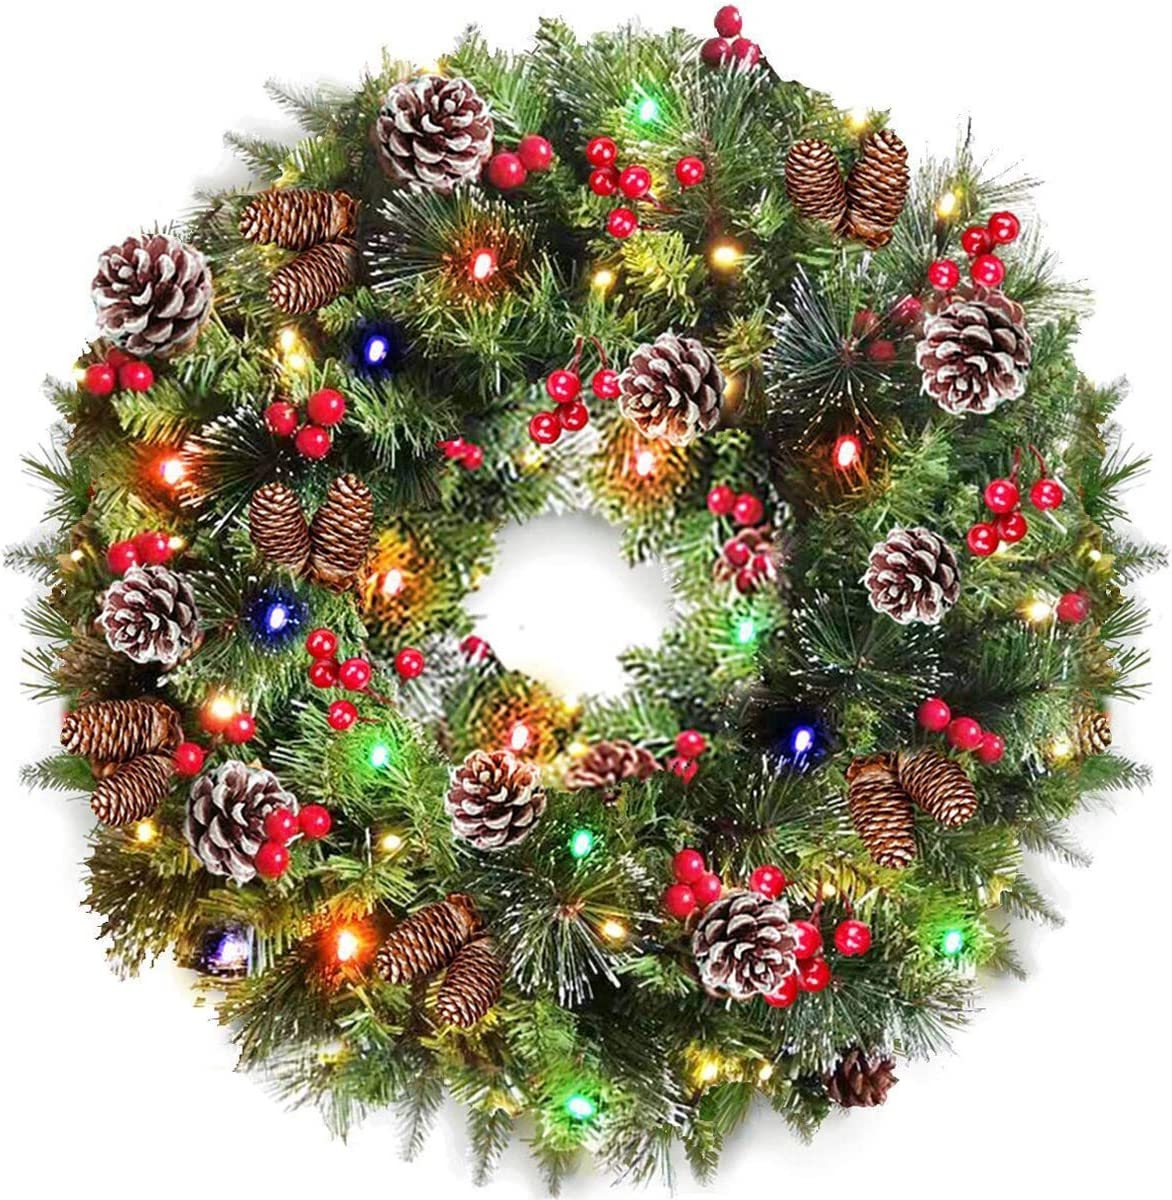 TURNMEON supreme 24 Inch Christmas Wreath Lights Colorful Batter with Super-cheap 80